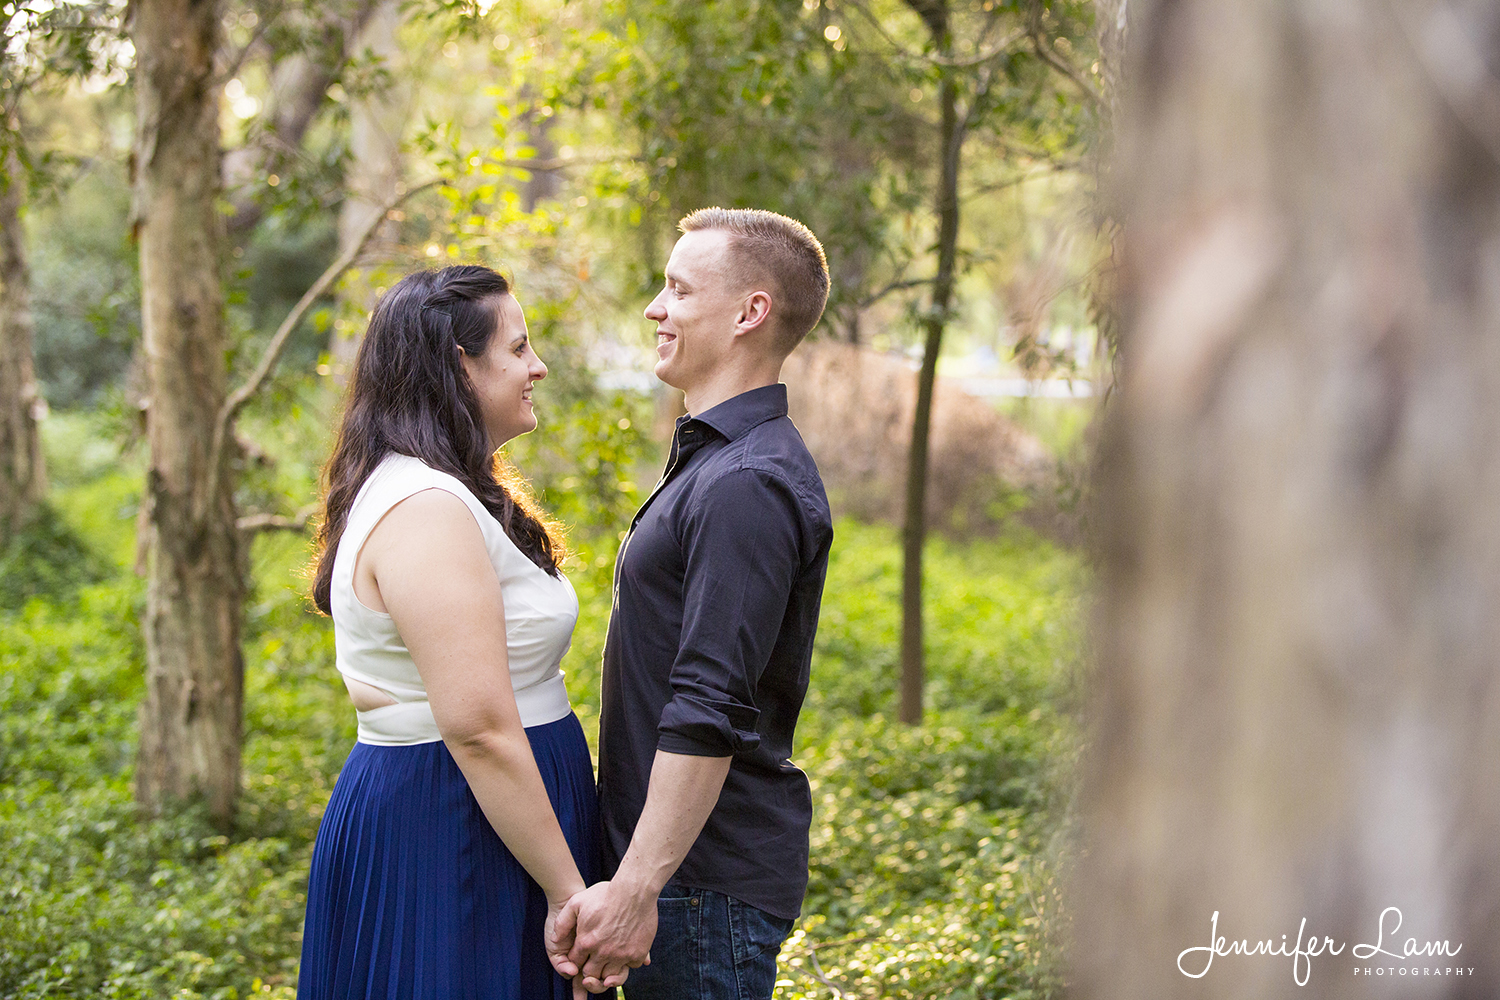 Engagement Session - Sydney Wedding Photographer - Jennifer Lam Photography (9).jpg